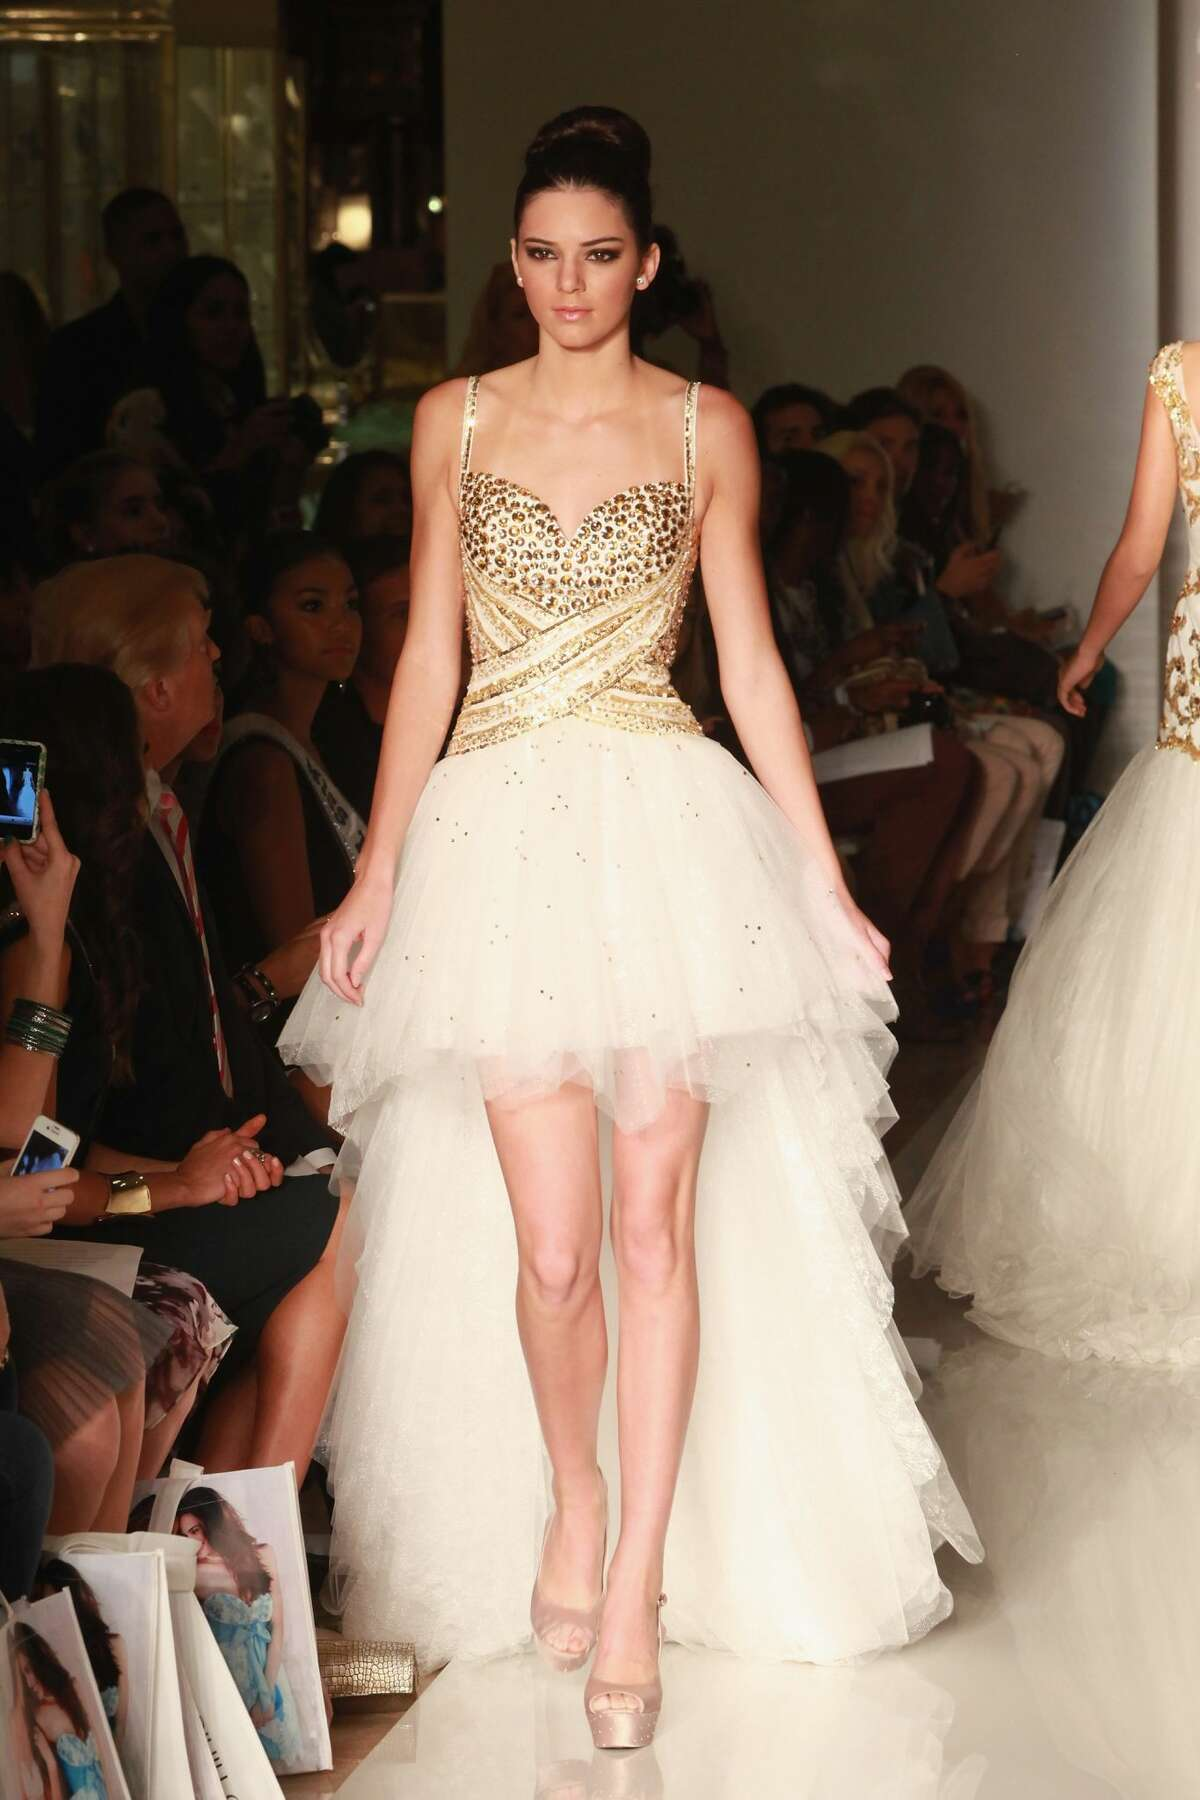 Kendall Jenner walks the runway during the Evening Sherri Hill spring 2013 fashion show during Mercedes-Benz Fashion Week at Trump Tower Grand Corridor on September 7, 2012. Keep clicking to see the evolution of Kendall Jenner's amazing modeling career.